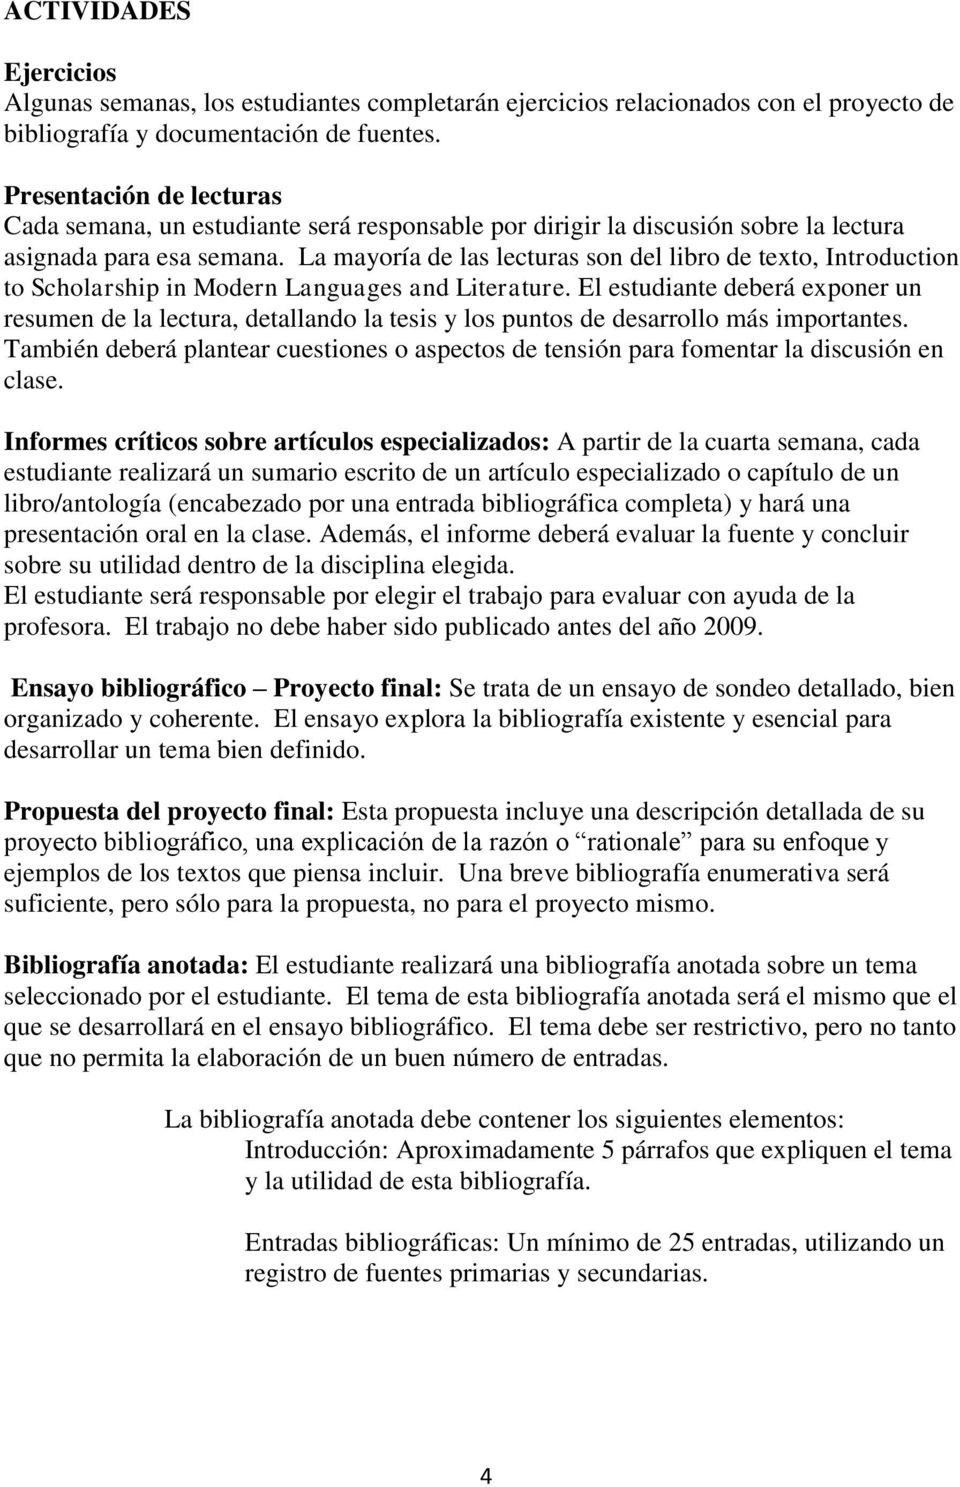 La mayoría de las lecturas son del libro de texto, Introduction to Scholarship in Modern Languages and Literature.